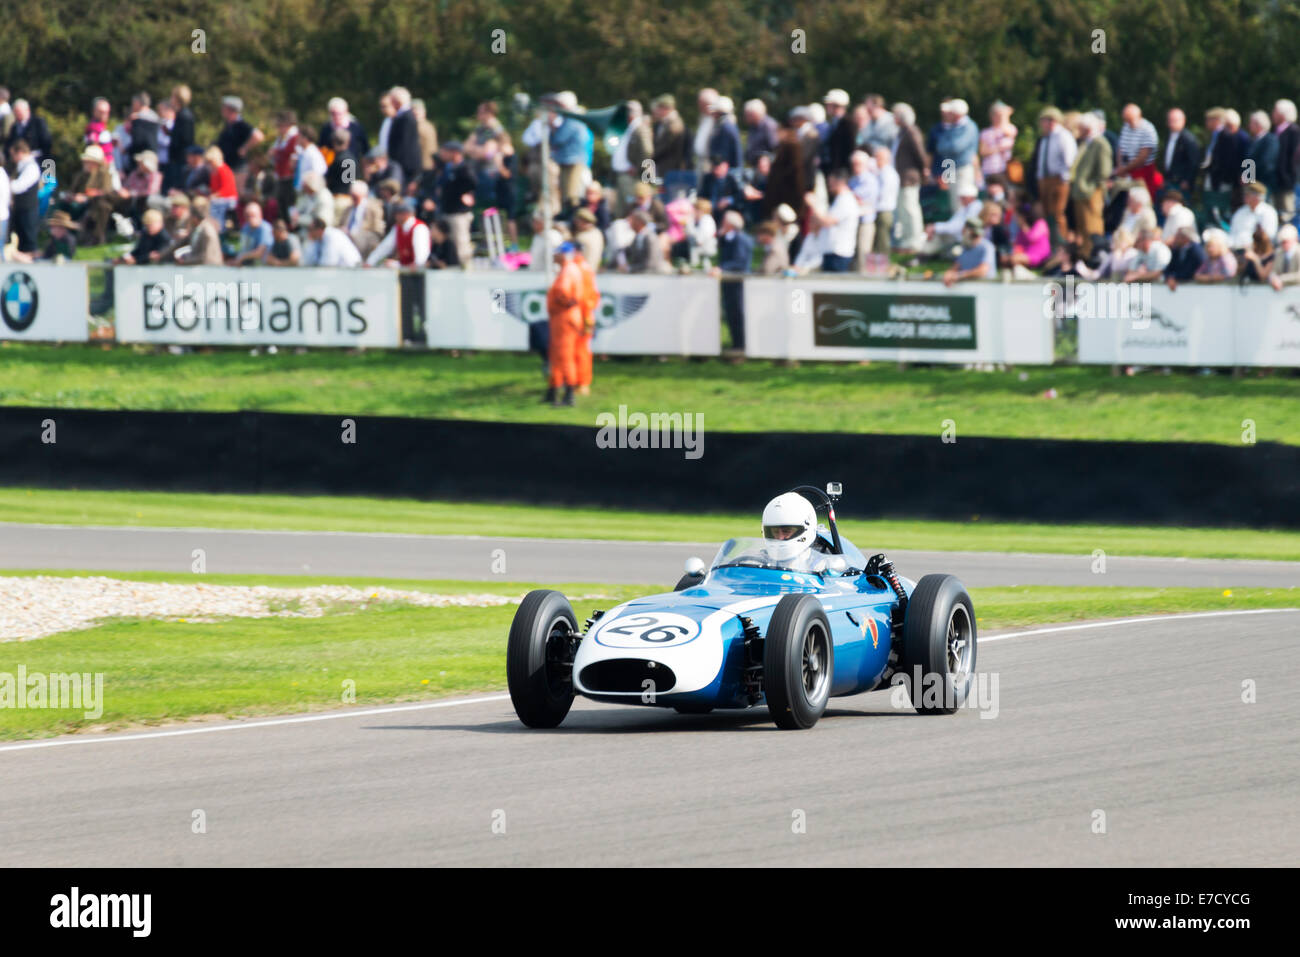 Chichester, West Sussex, UK. Sonntag, 14. September 2014. Beim Goodwood Revival, Goodwood motor Circuit. Am letzten Stockfoto